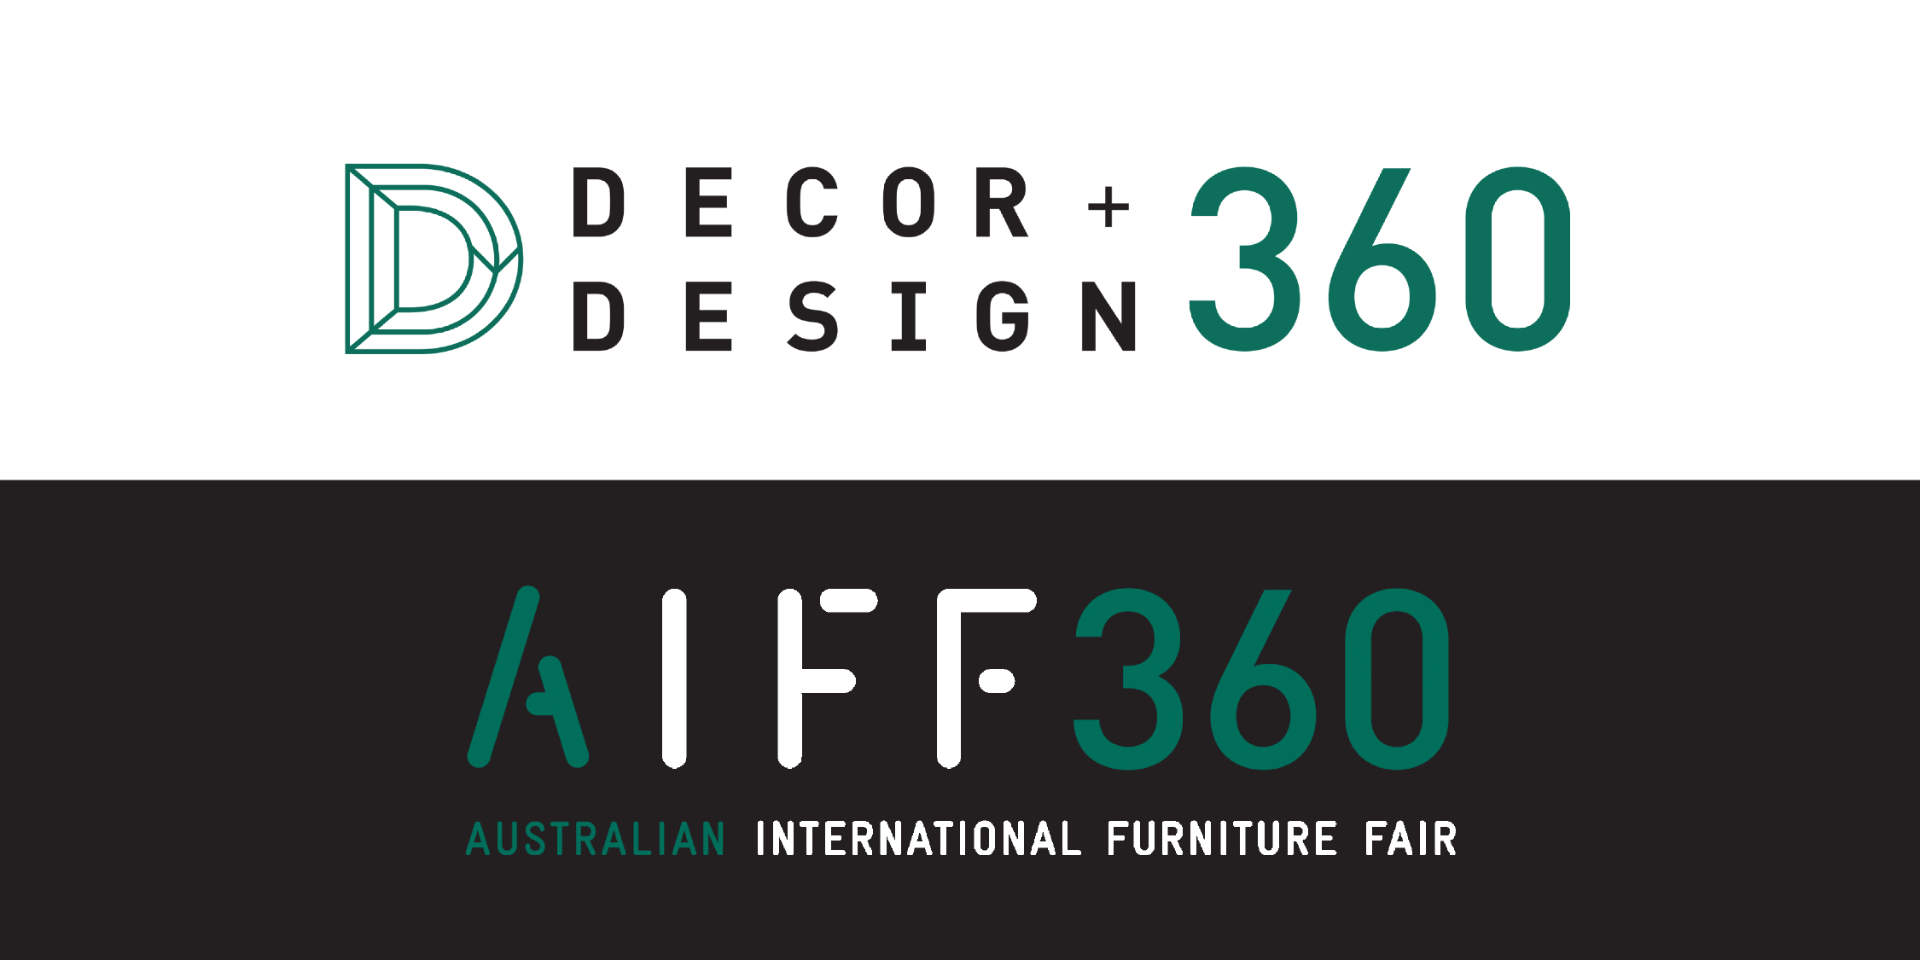 DECOR + DESIGN & AIFF 360